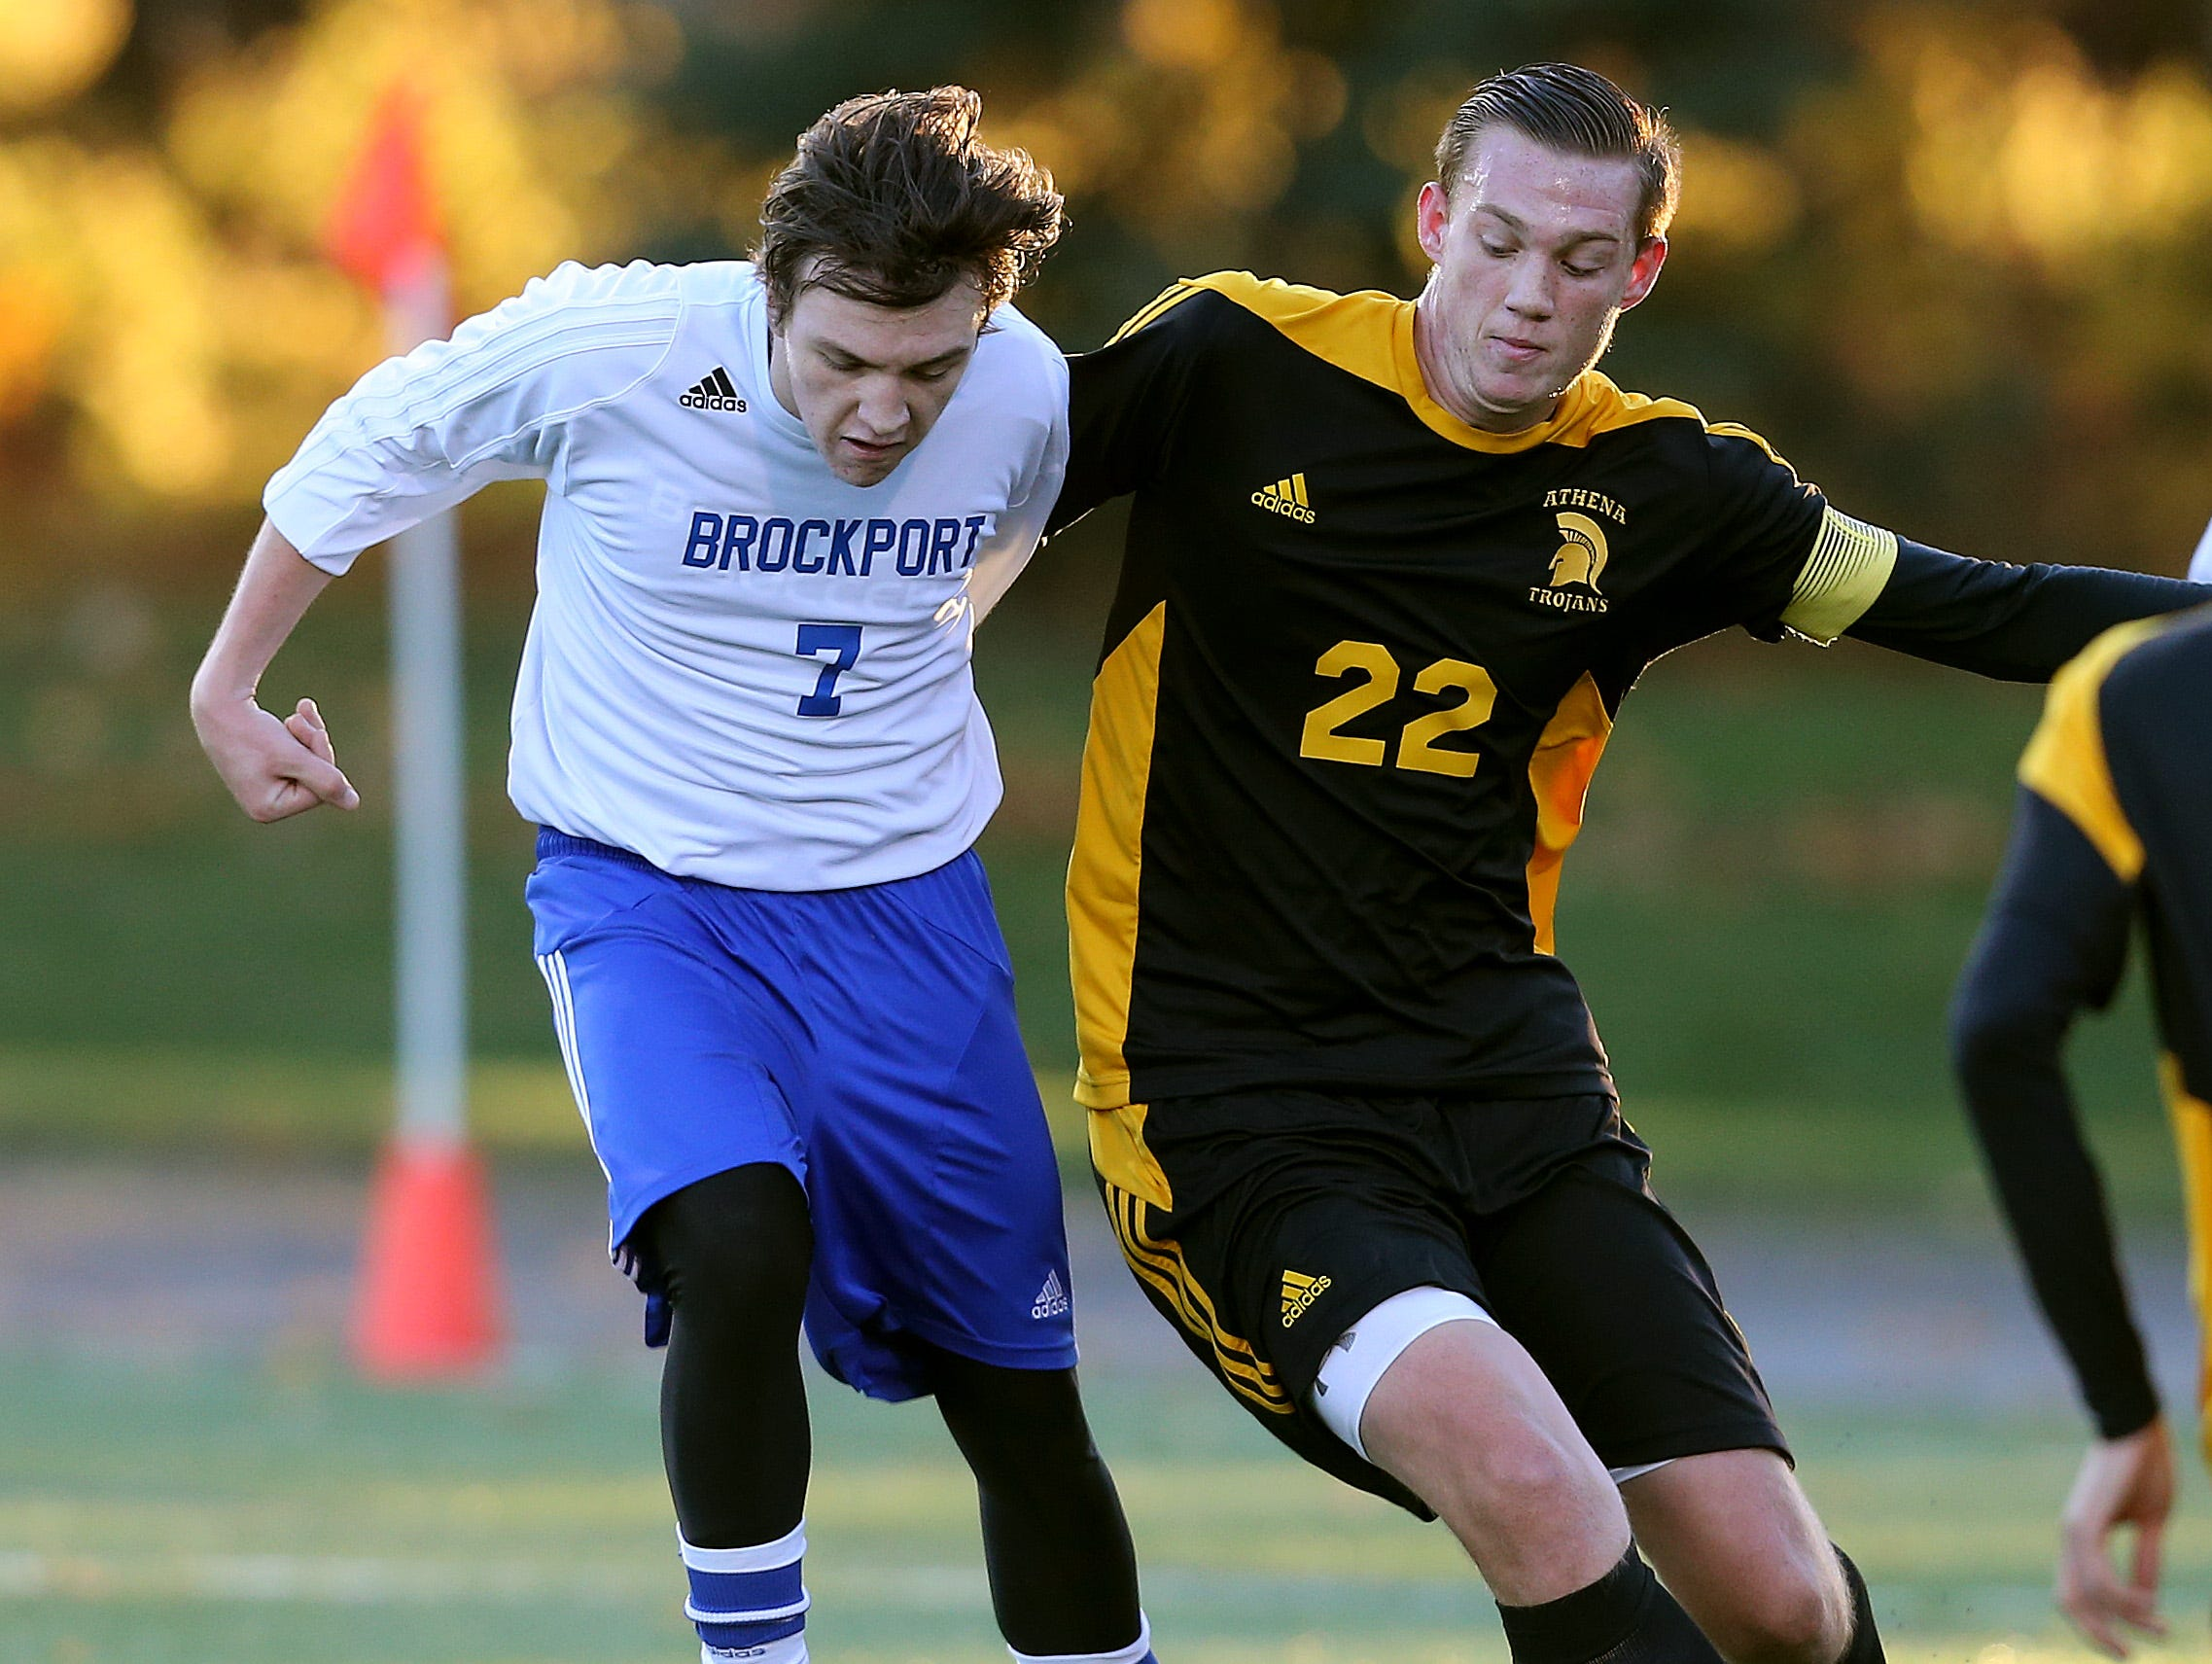 Athena's Zach Koons (22) and Nolan Maines (7) fight for aloes ball.